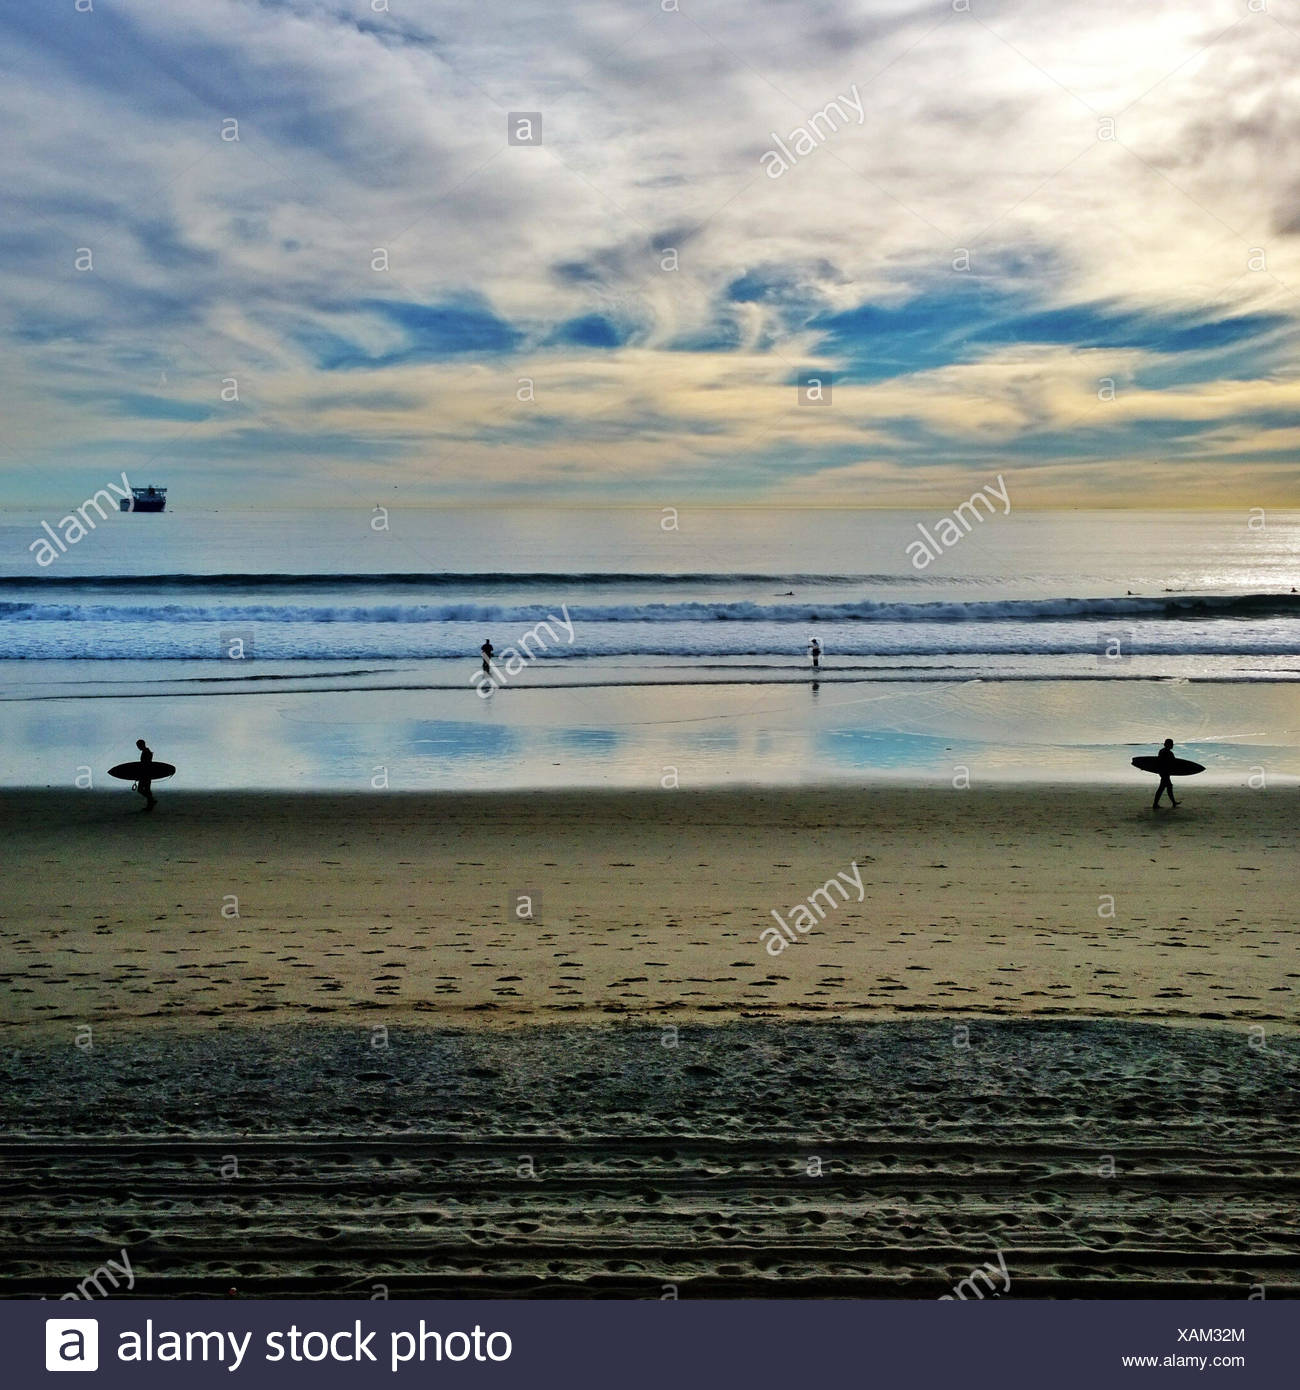 Seascape with surfers at beach - Stock Image